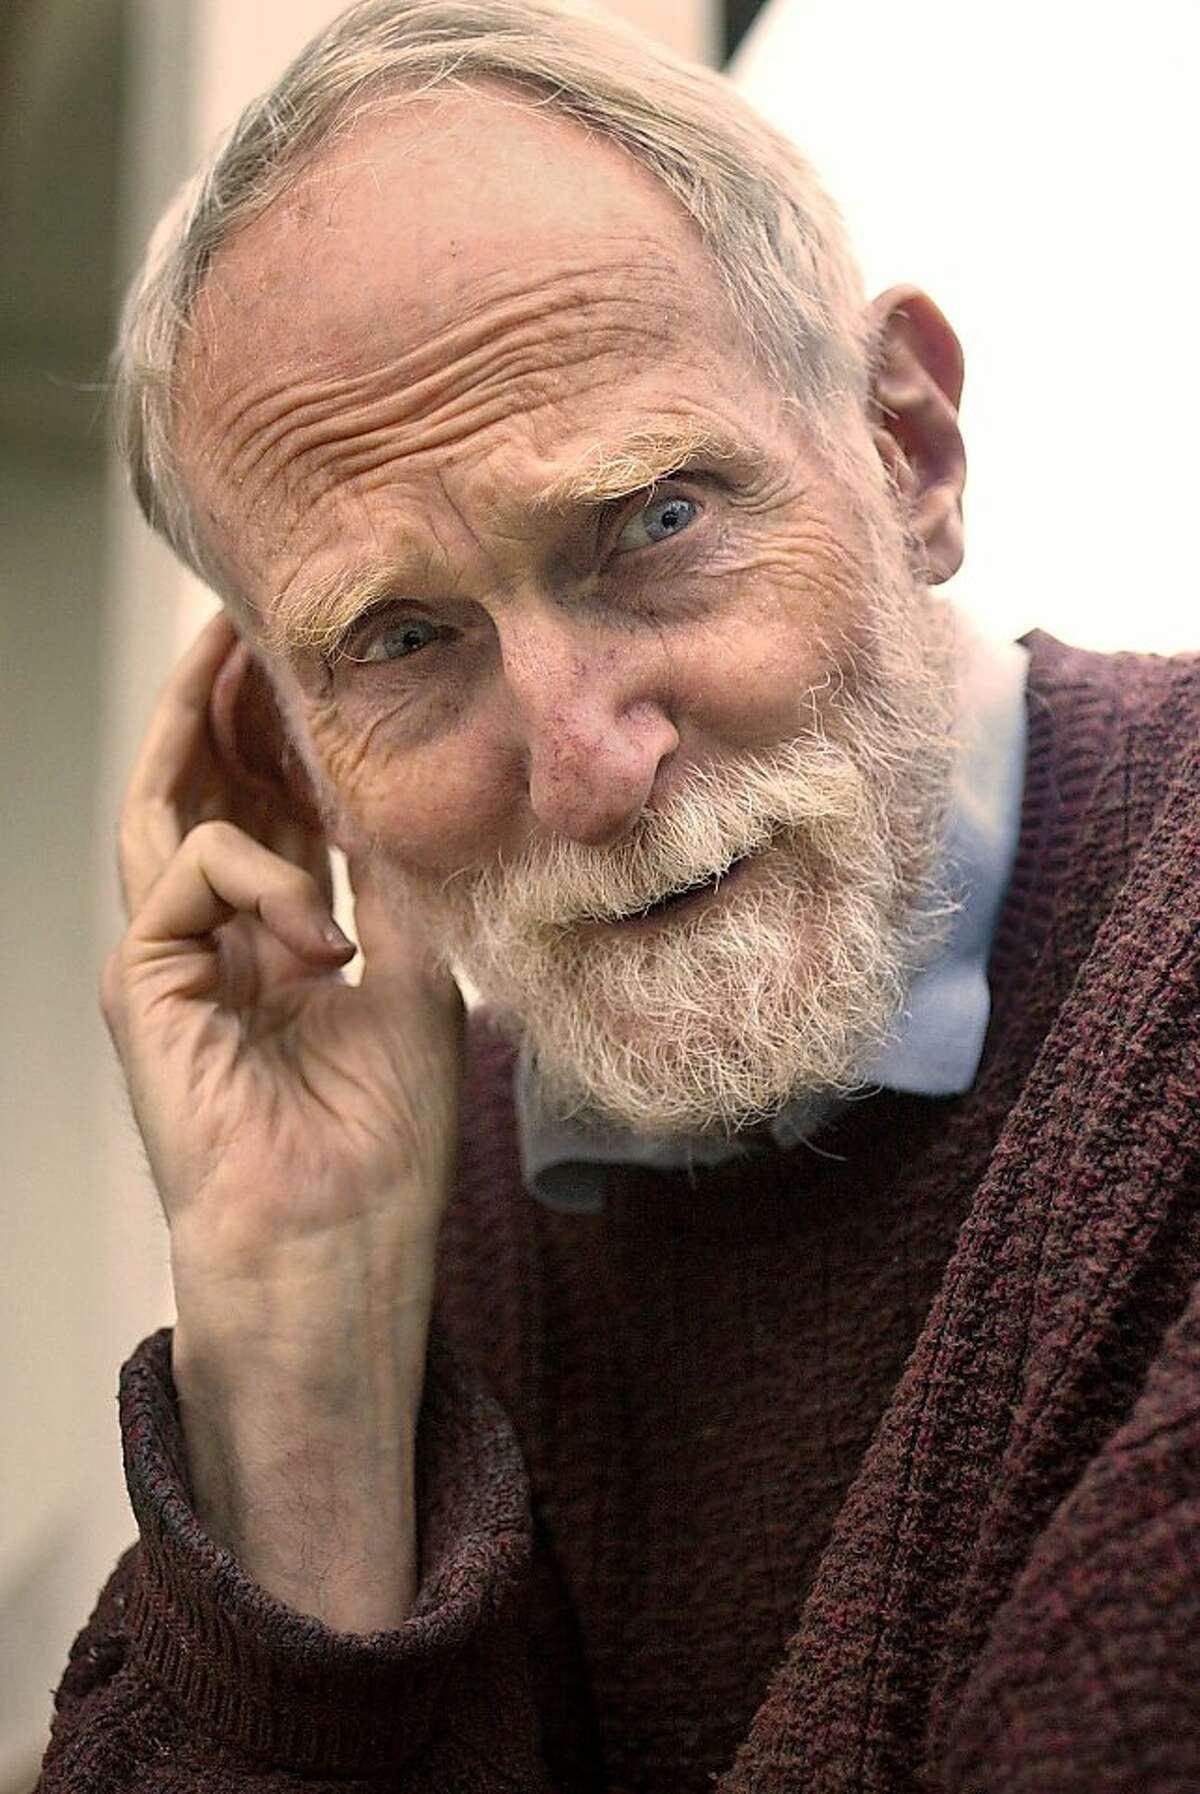 """Character actor Roberts Blossom, who played the white-bearded neighbor """"old man Marley"""" in the movie """"Home Alone,"""" has died at age 87."""